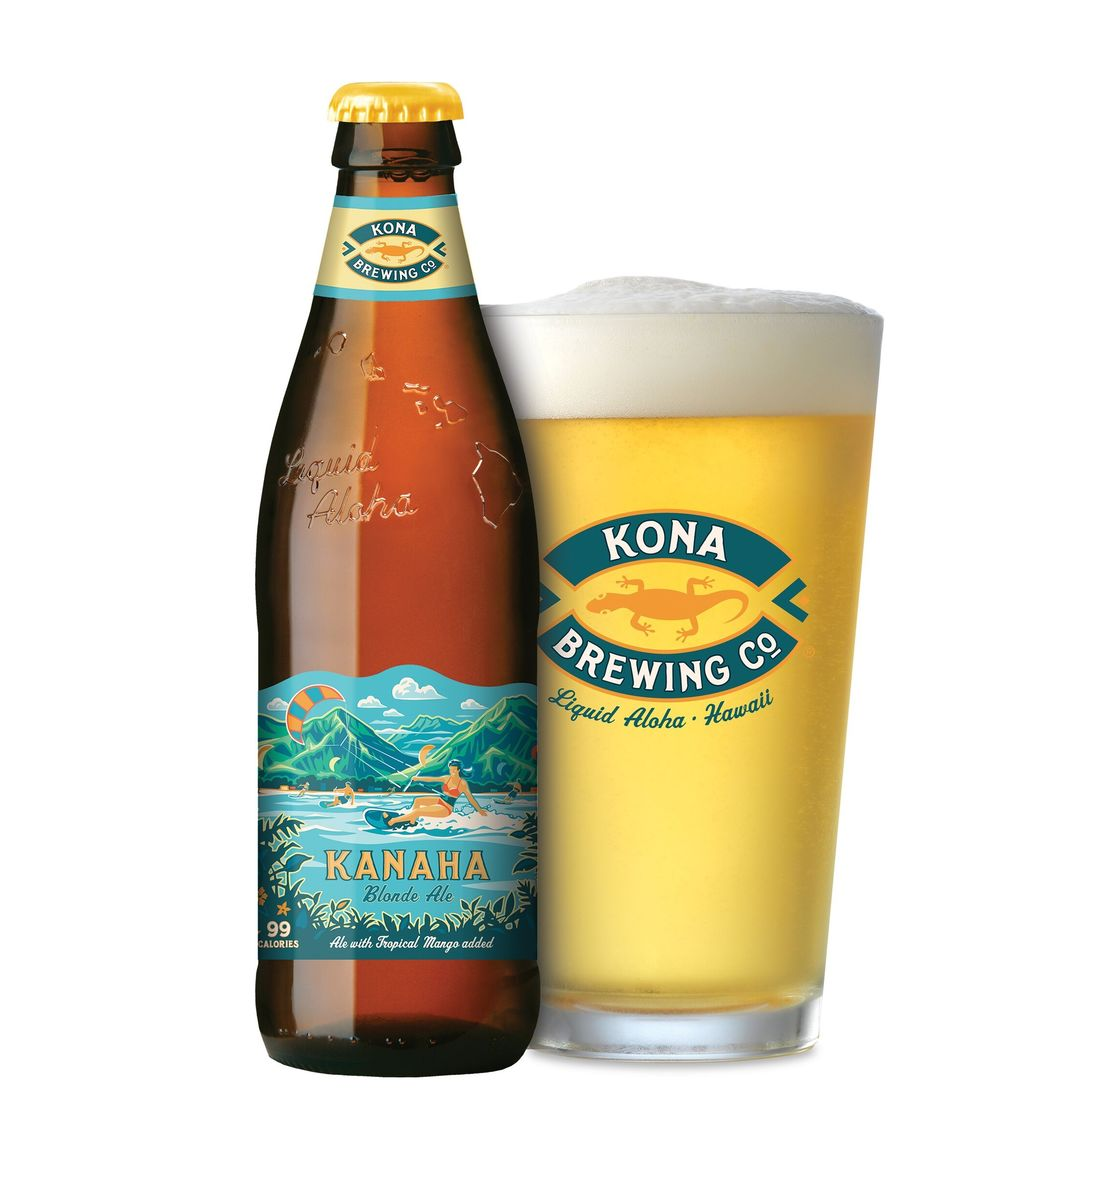 Kahana Blonde  Kona Brewing Co.